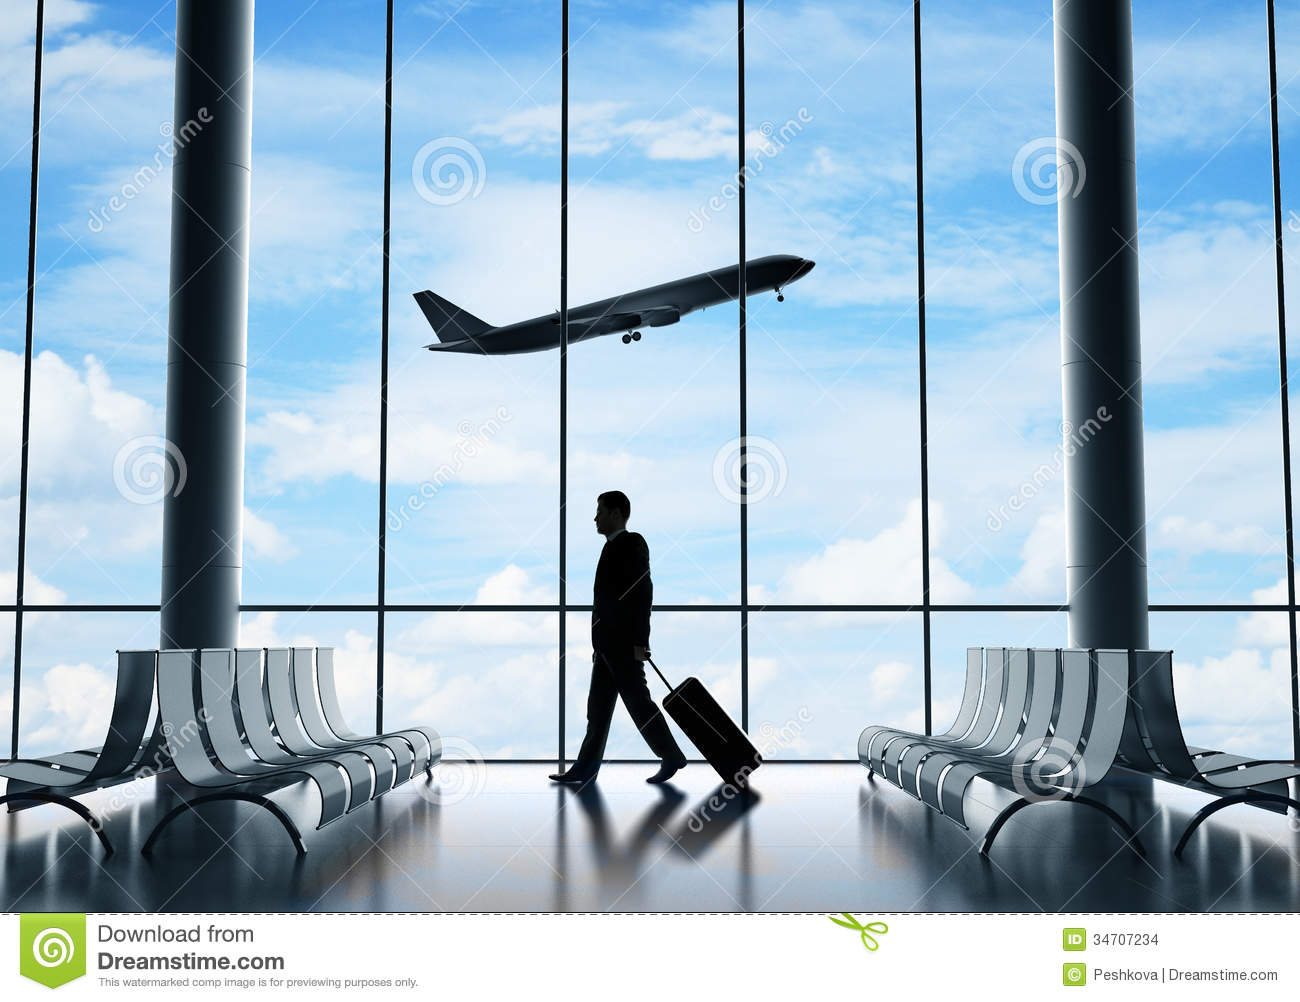 Businessman In Airport Stock Images - Image: 34707234